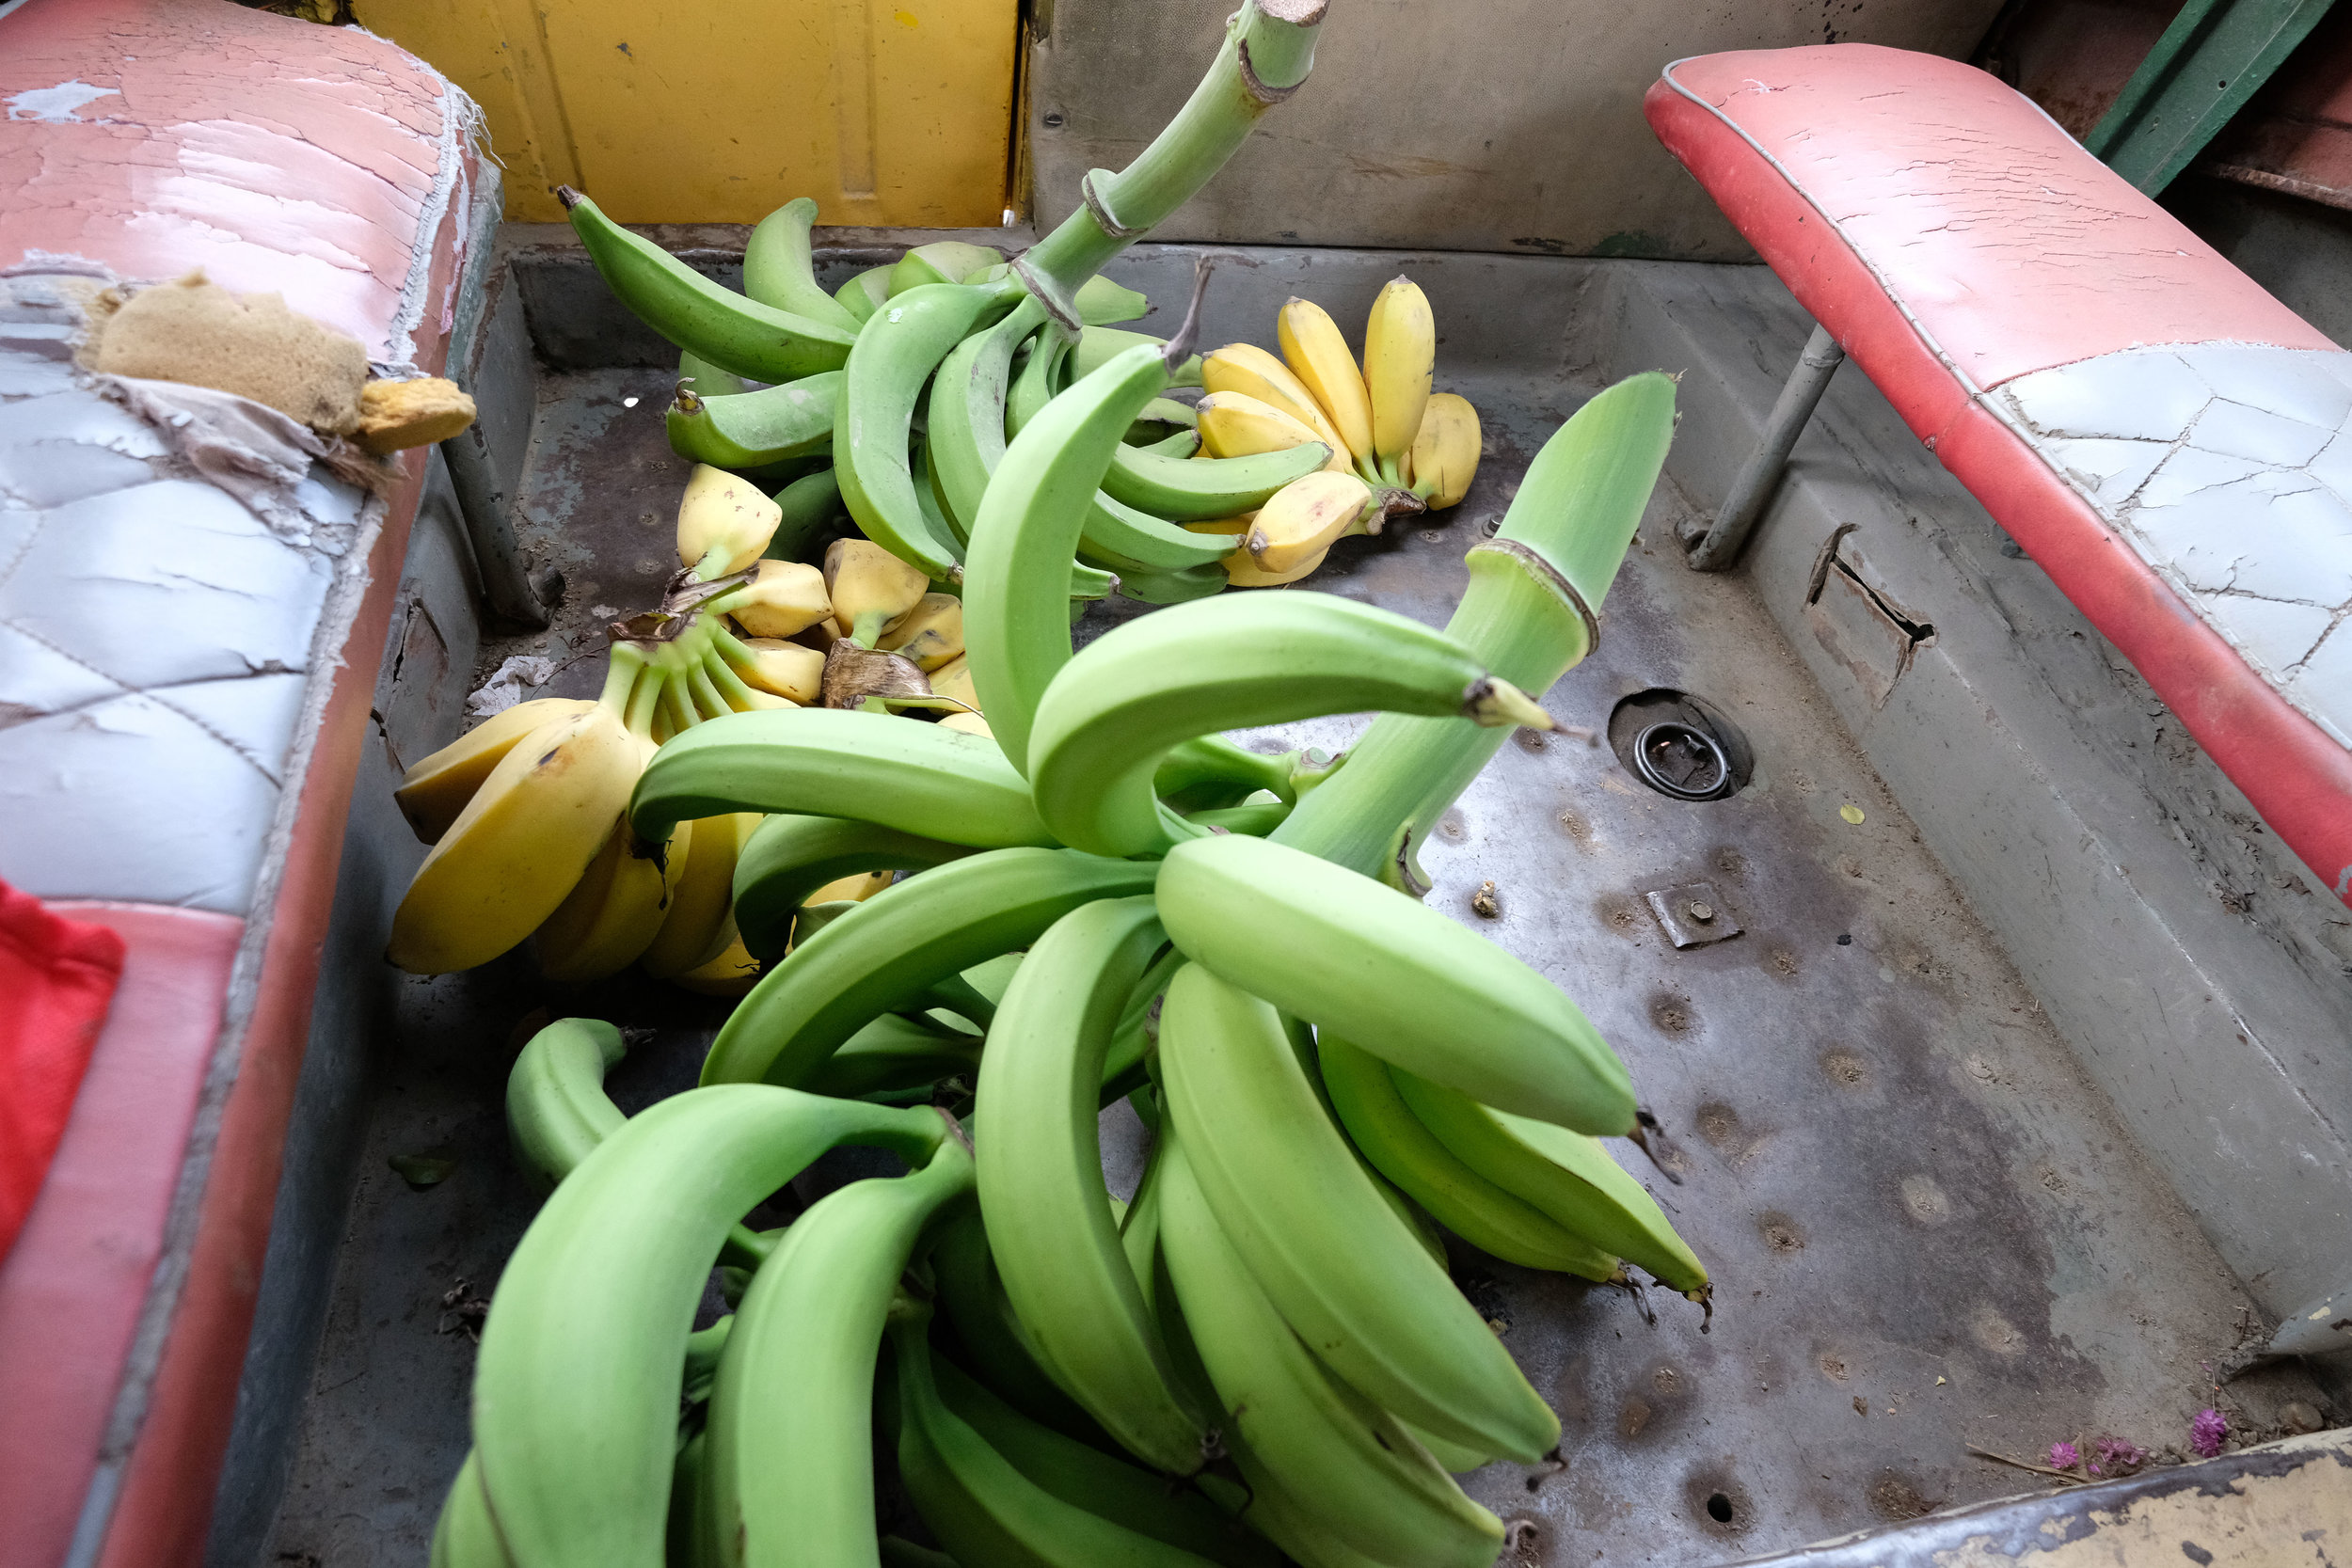 The Green bananas are for Plantains